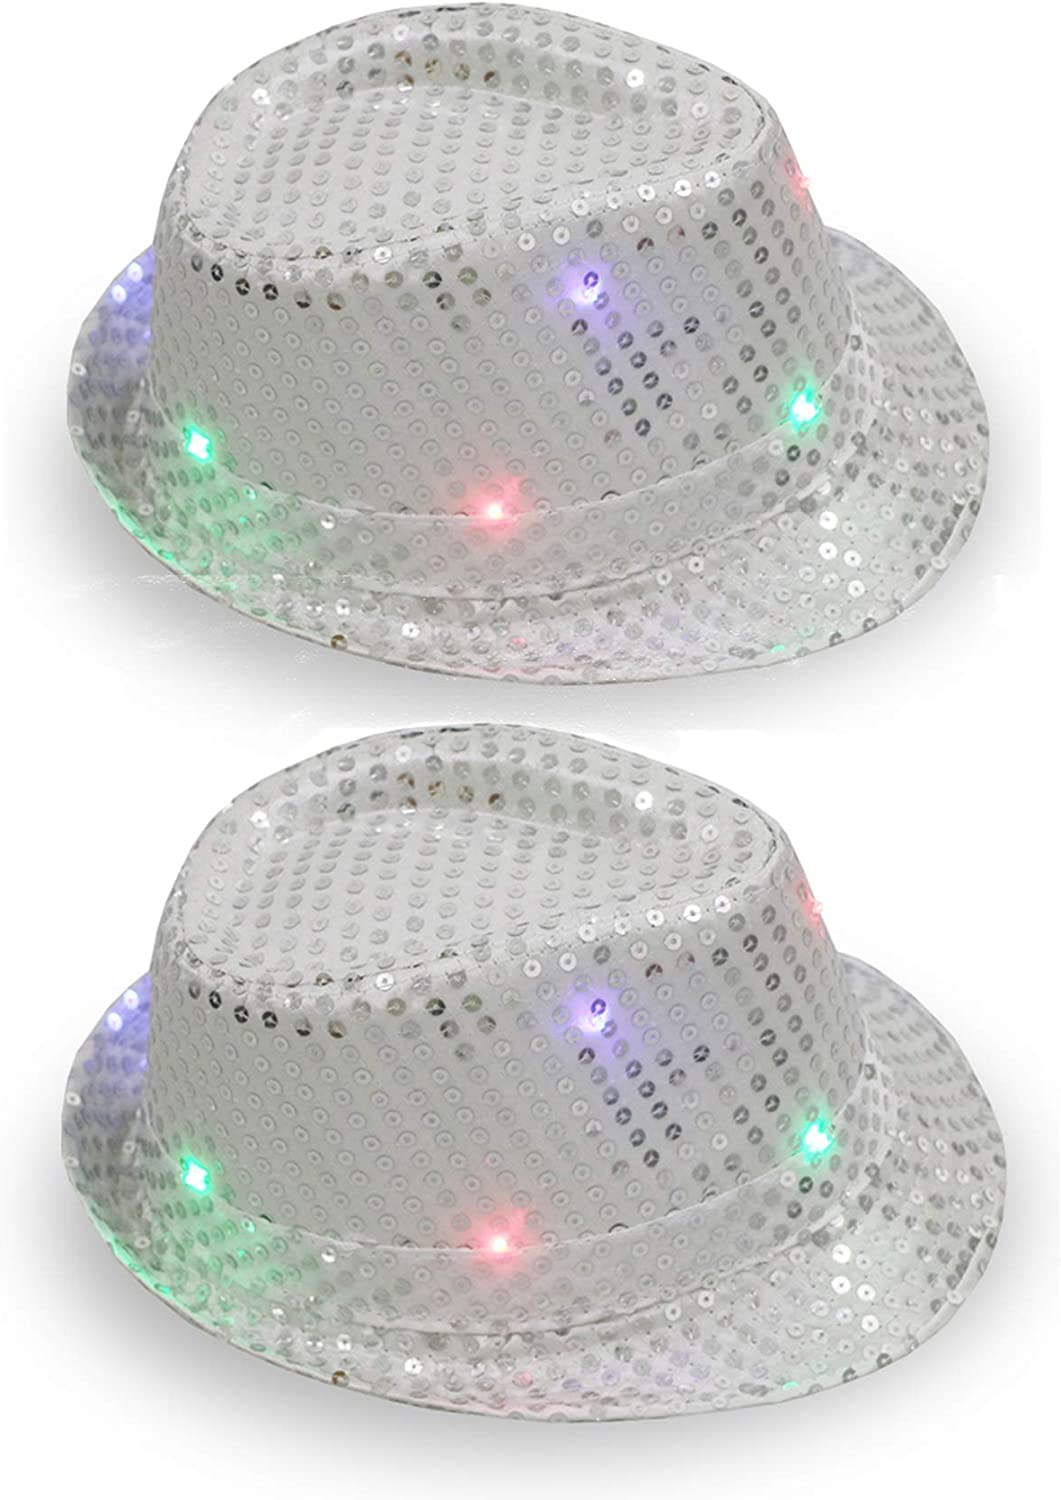 CHRISTMAS LED Flashing LightUp Sequin Fedora Hats CHOOSE YOUR COLOR!